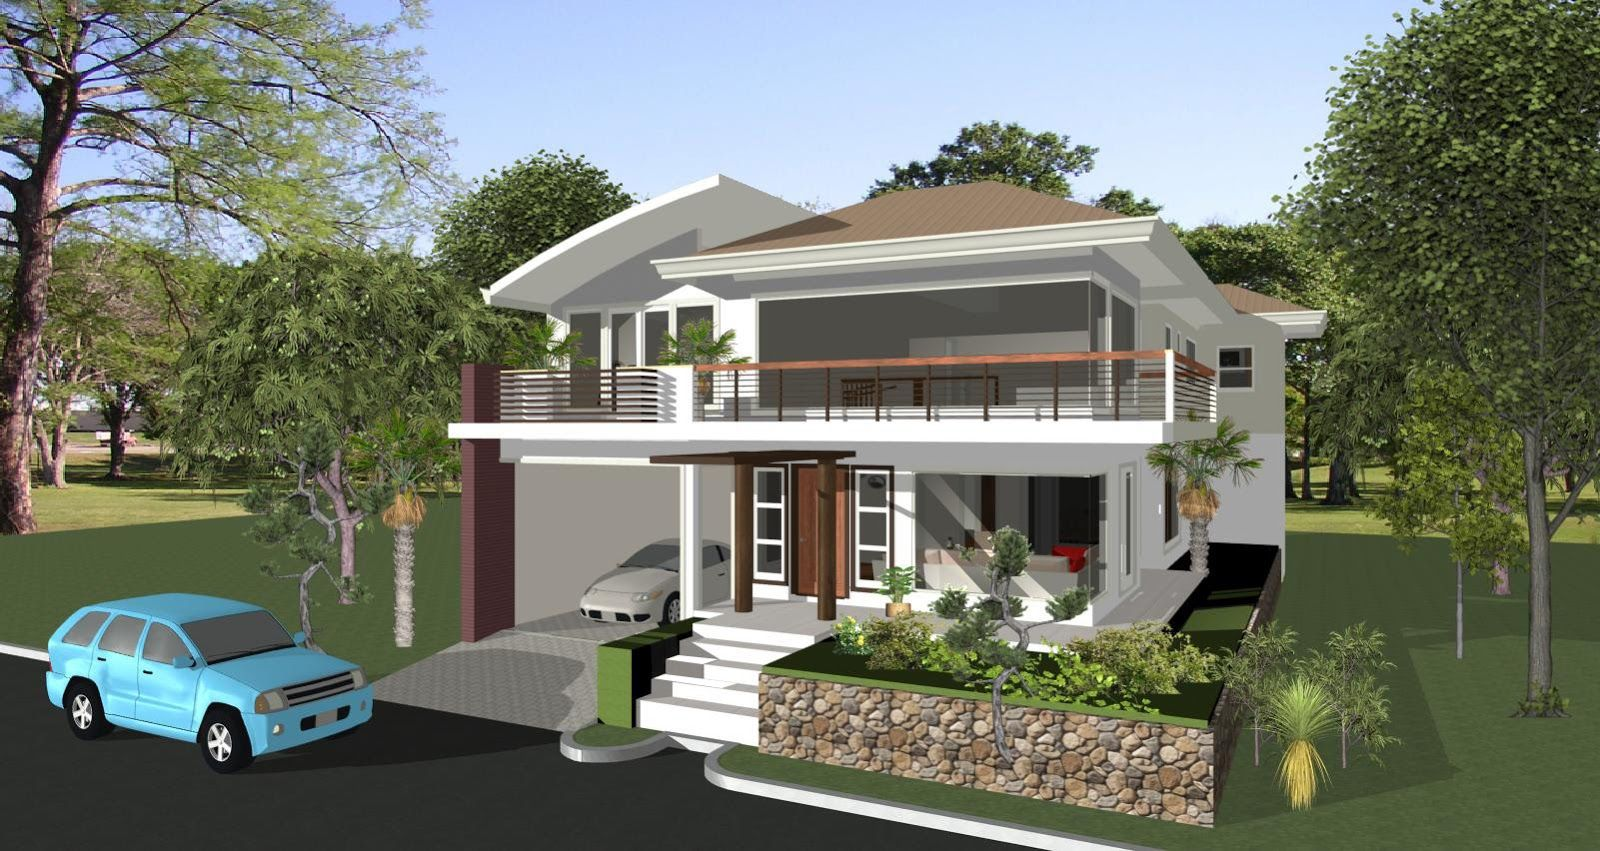 Charmant House Designs Iloilo Philippine Home Designs Philippines House Design  Simply Elegant Home Designs Unique Small House